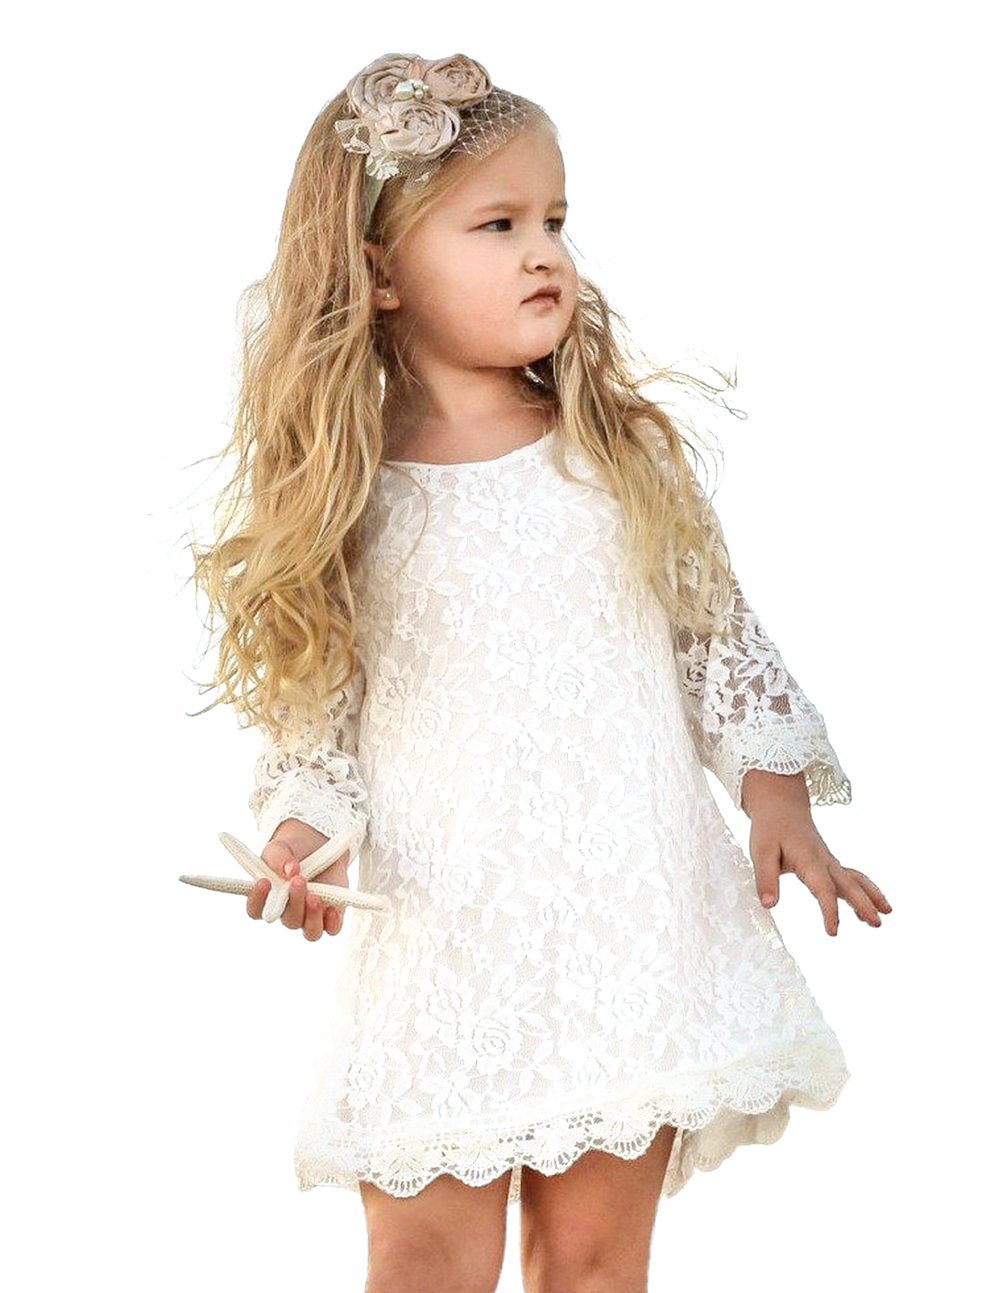 Tkiames Girls Easter Flower Dress Casual Crew Neck Floral A-Line Party Dress (3T(3-4 Years), White)